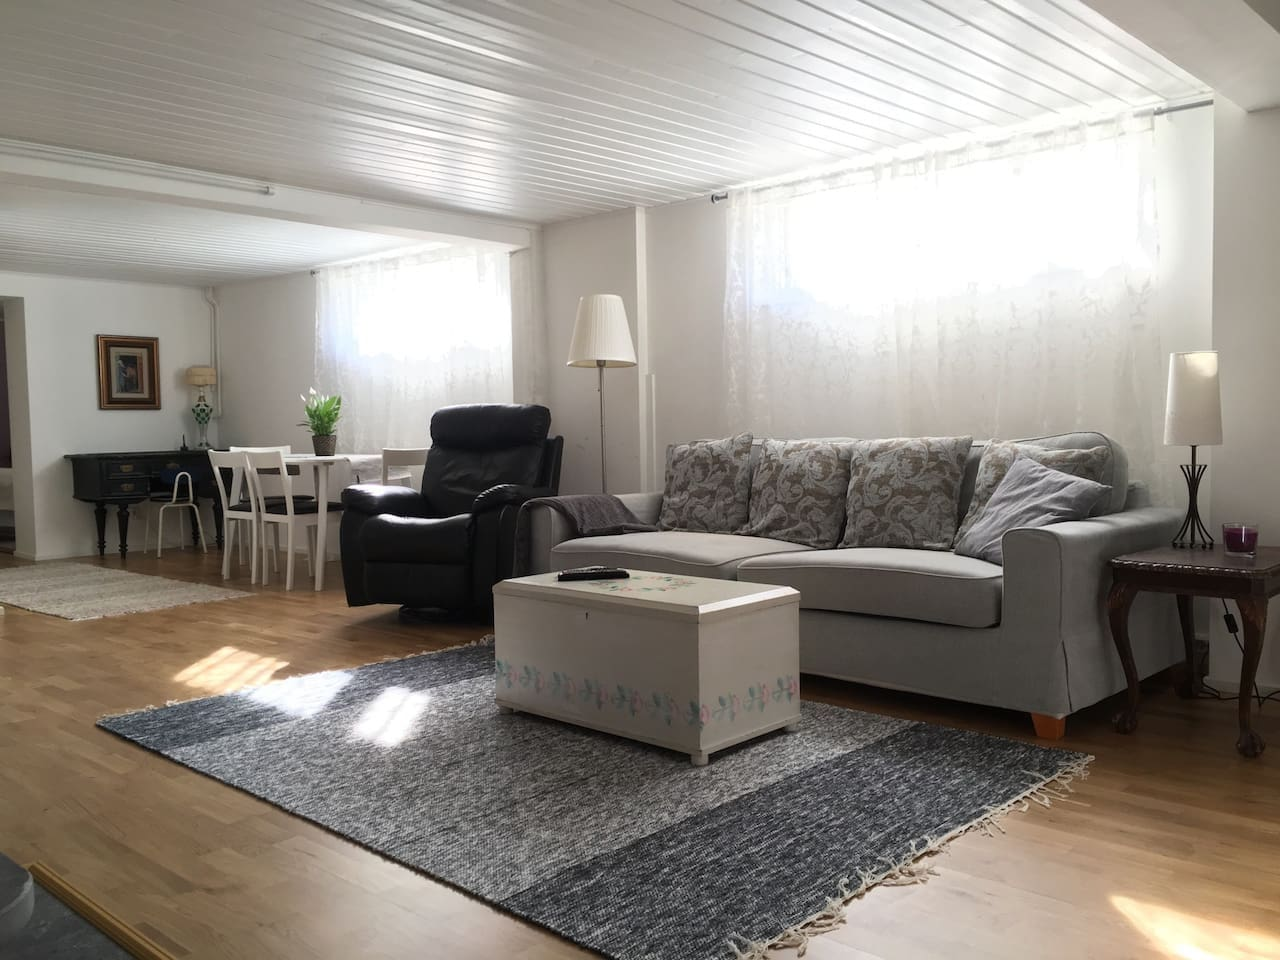 Very comfy, clean and bright space for relaxing.